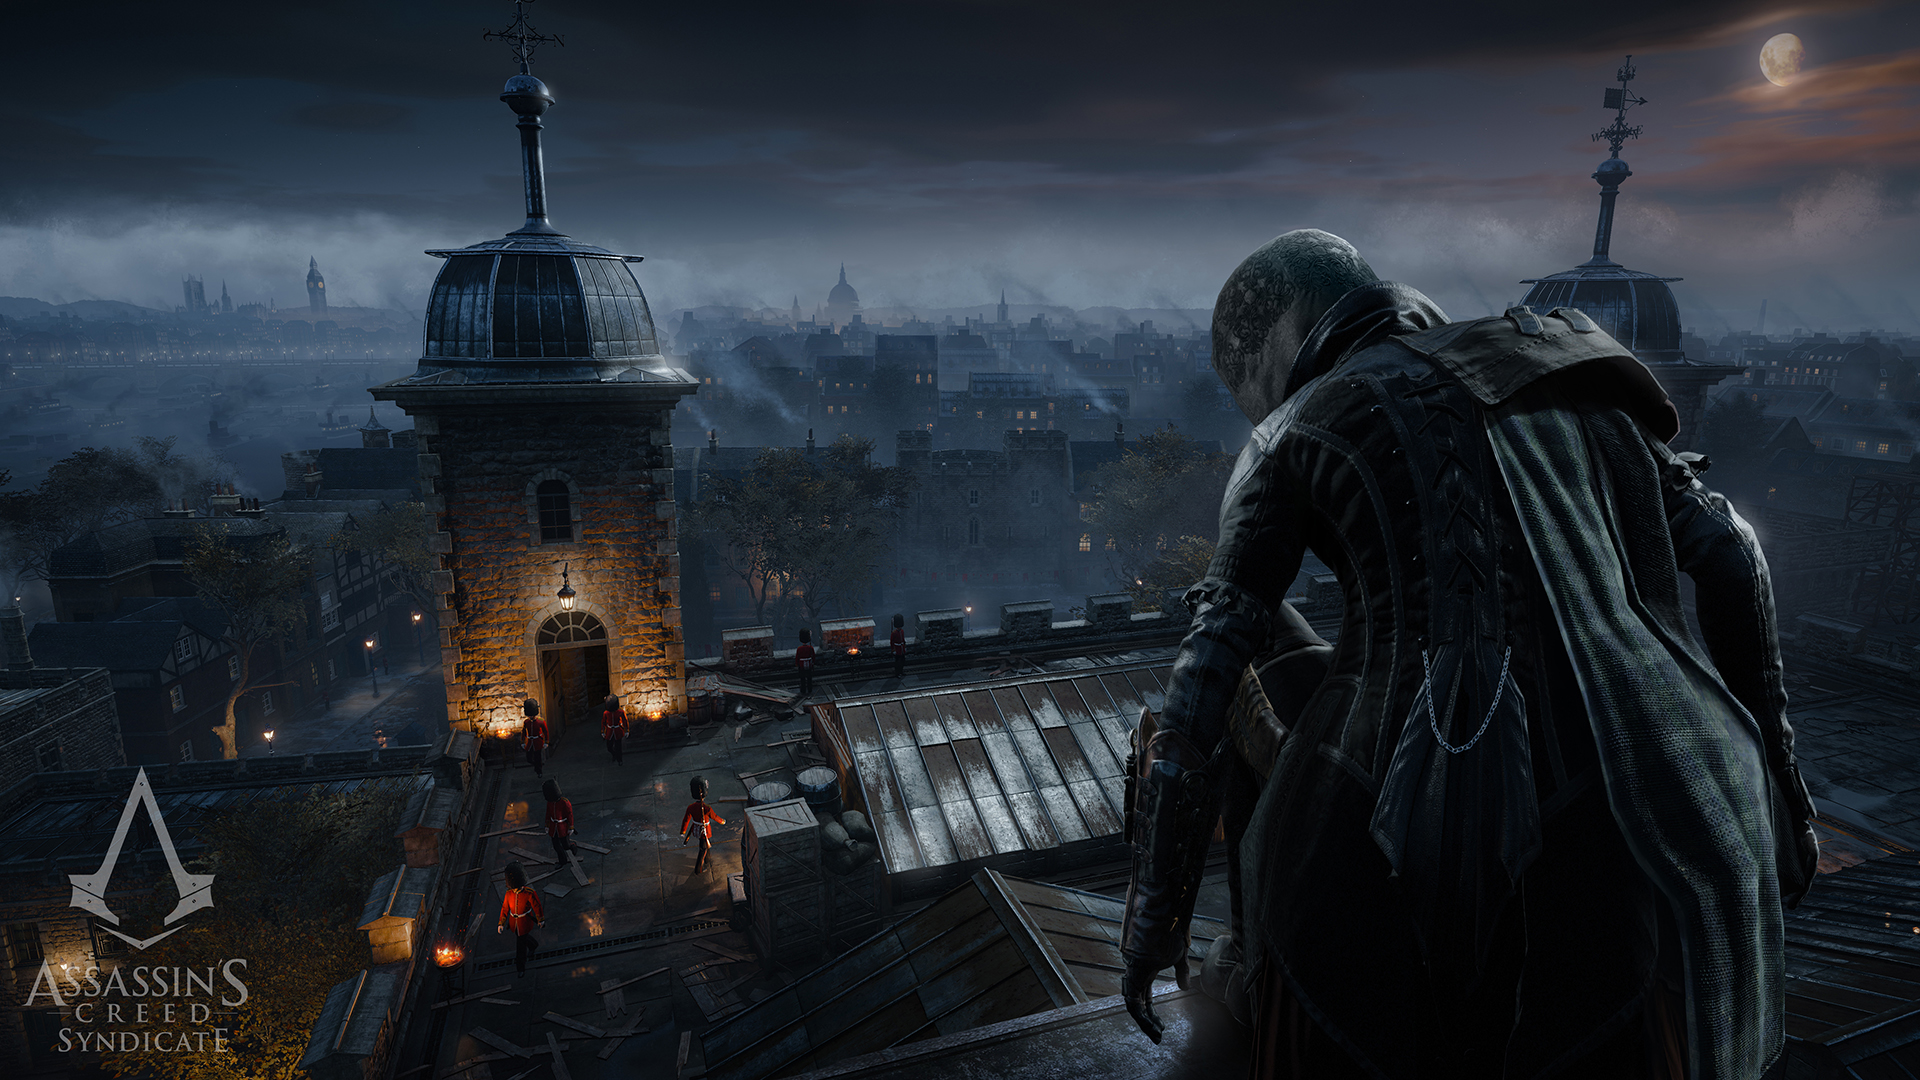 Assassin's Creed Syndicate Secrets of London visual guide ...